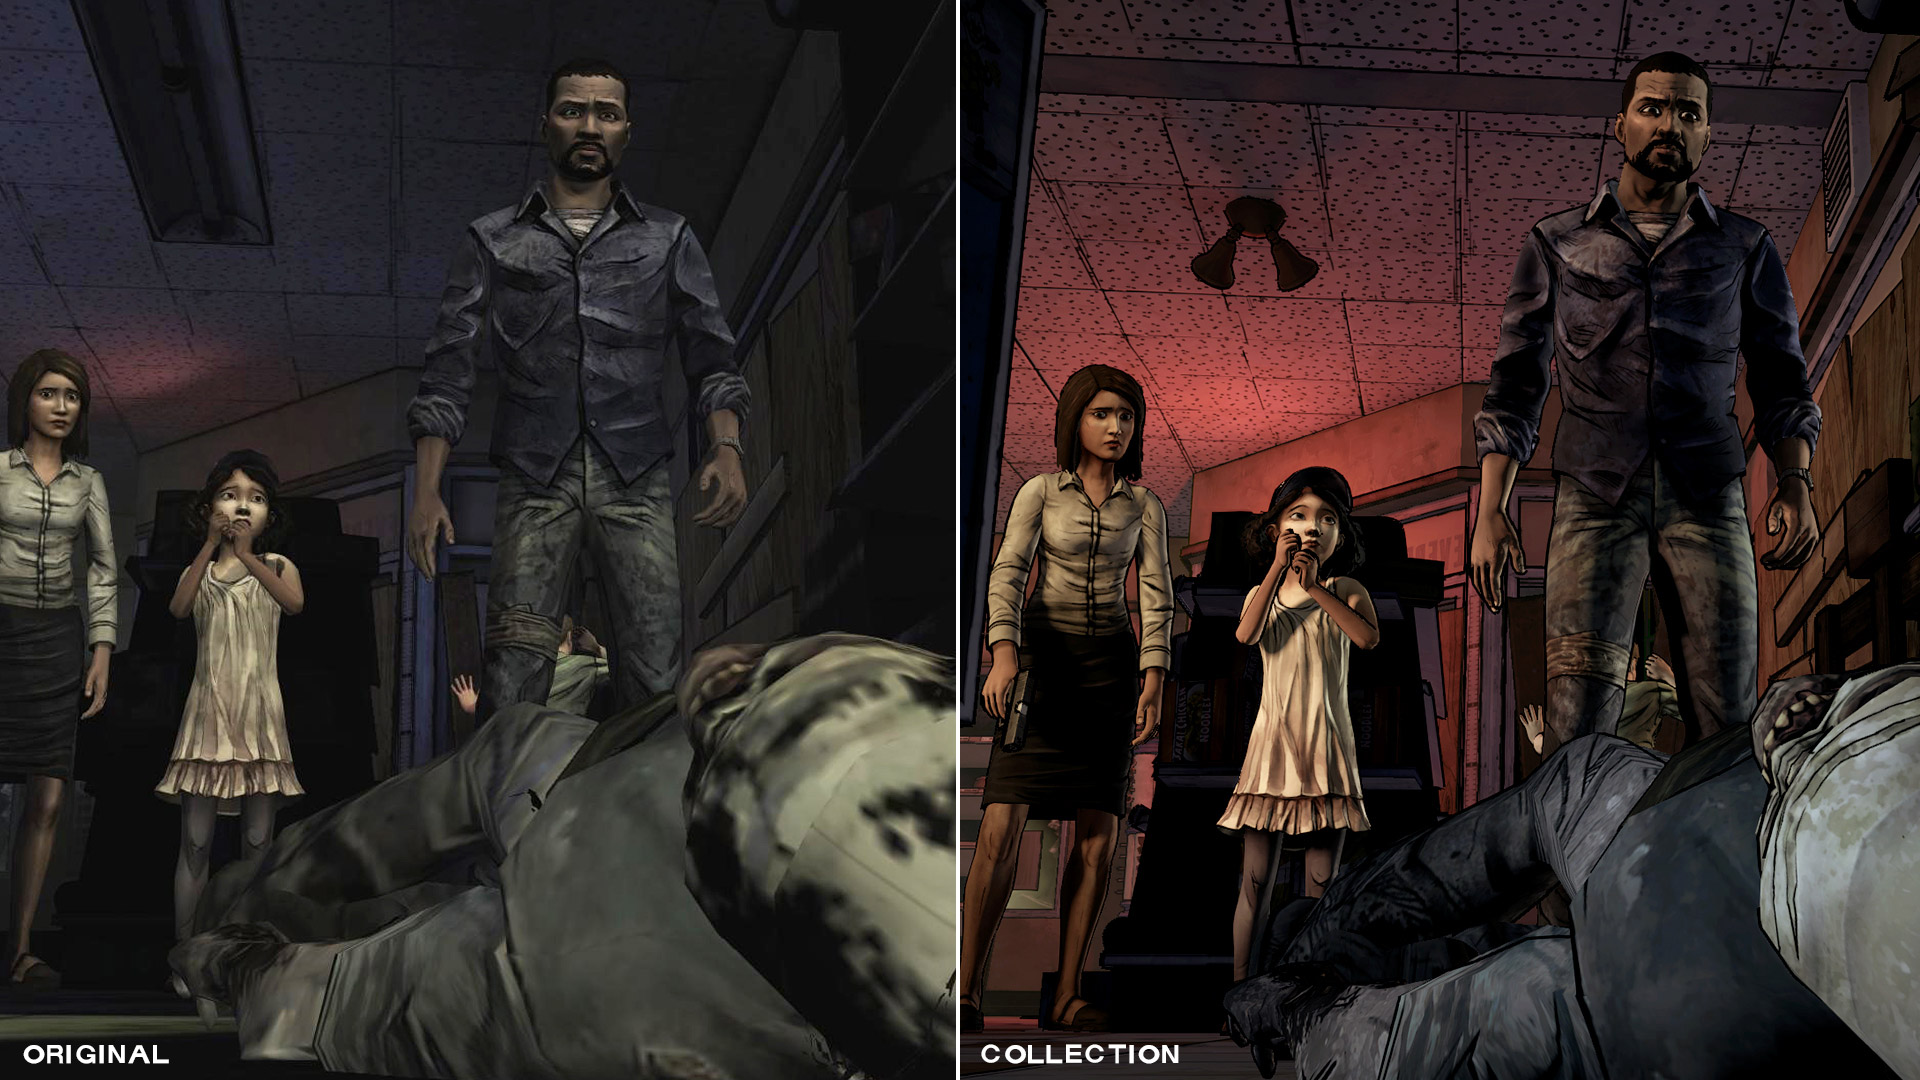 The Walking Dead Collection Announced, Includes Entire Telltale Series With Redone Visuals